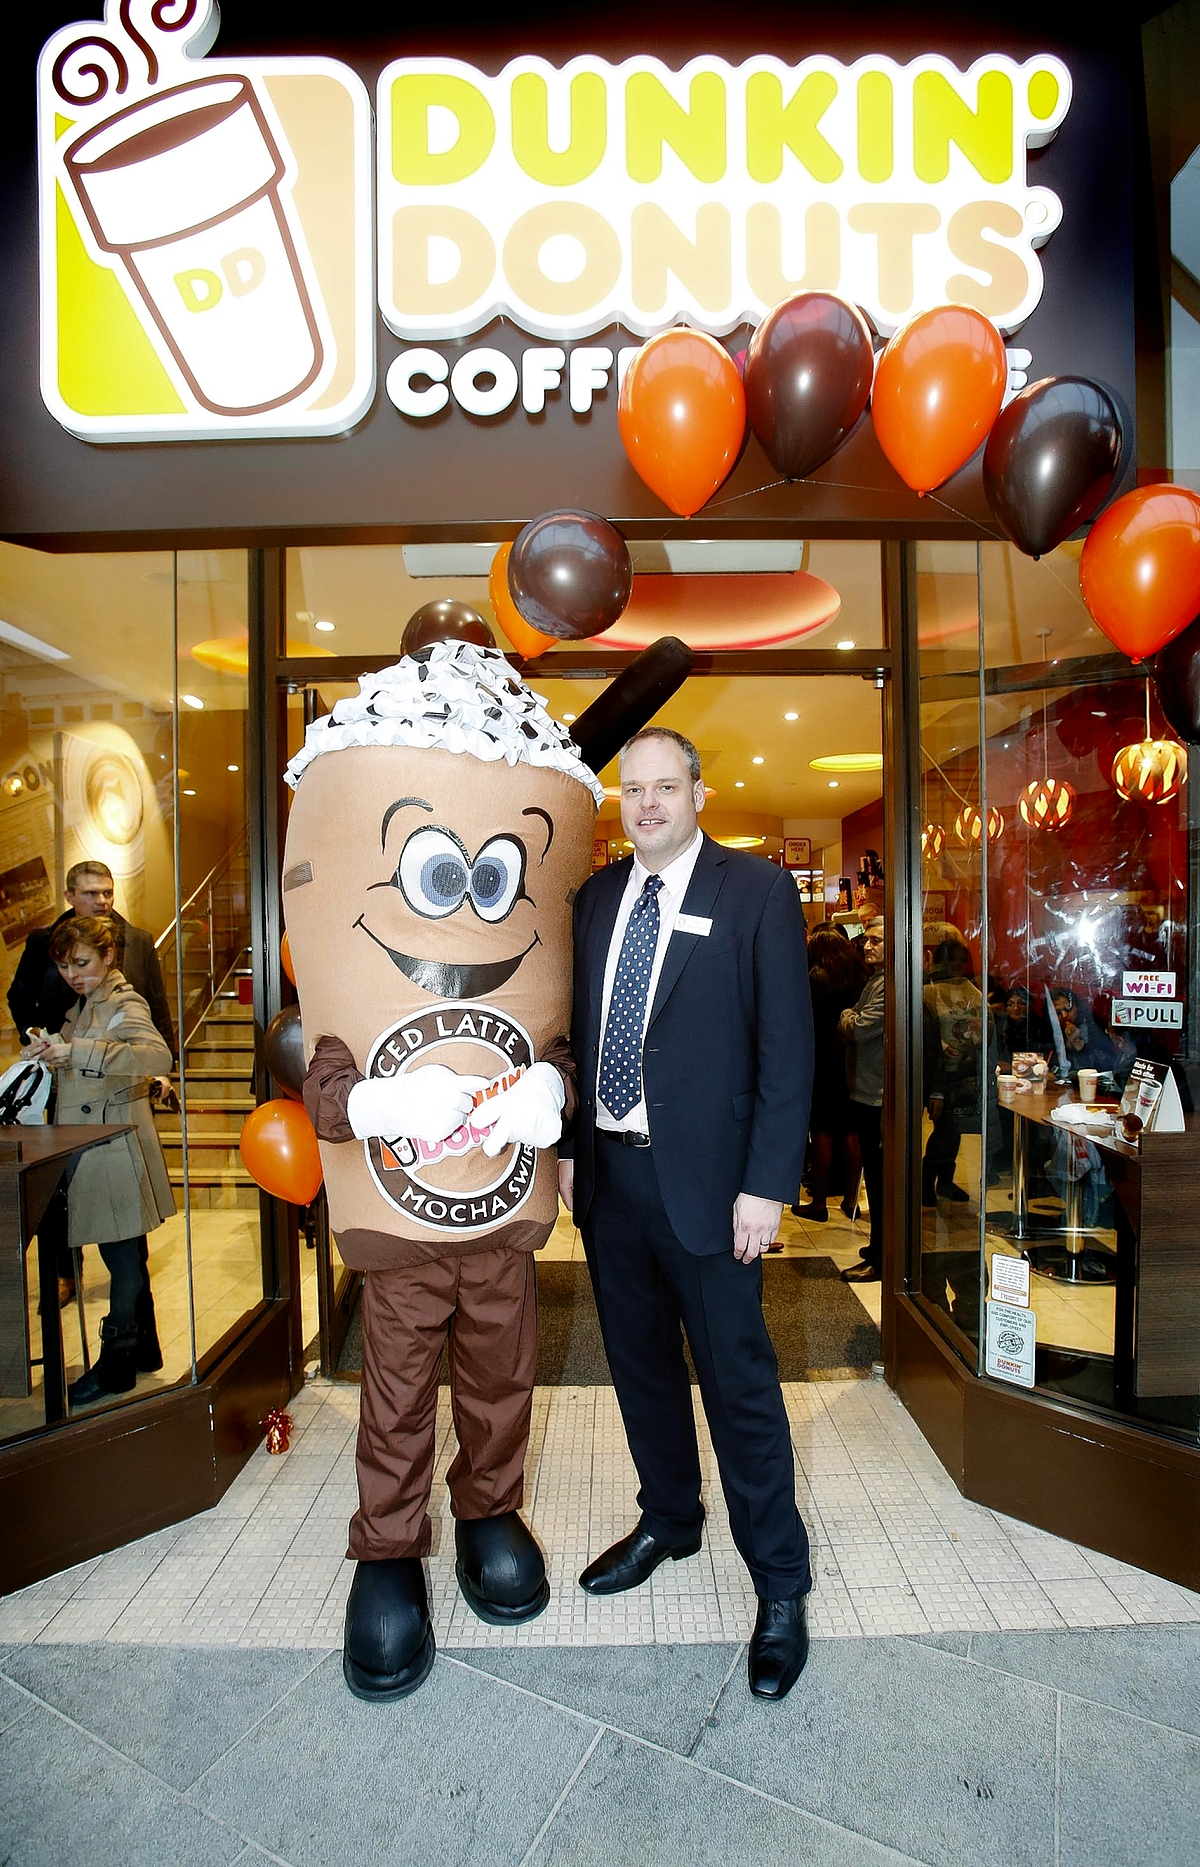 The official opening of the UK's first Dunkin' Donuts in 20 years